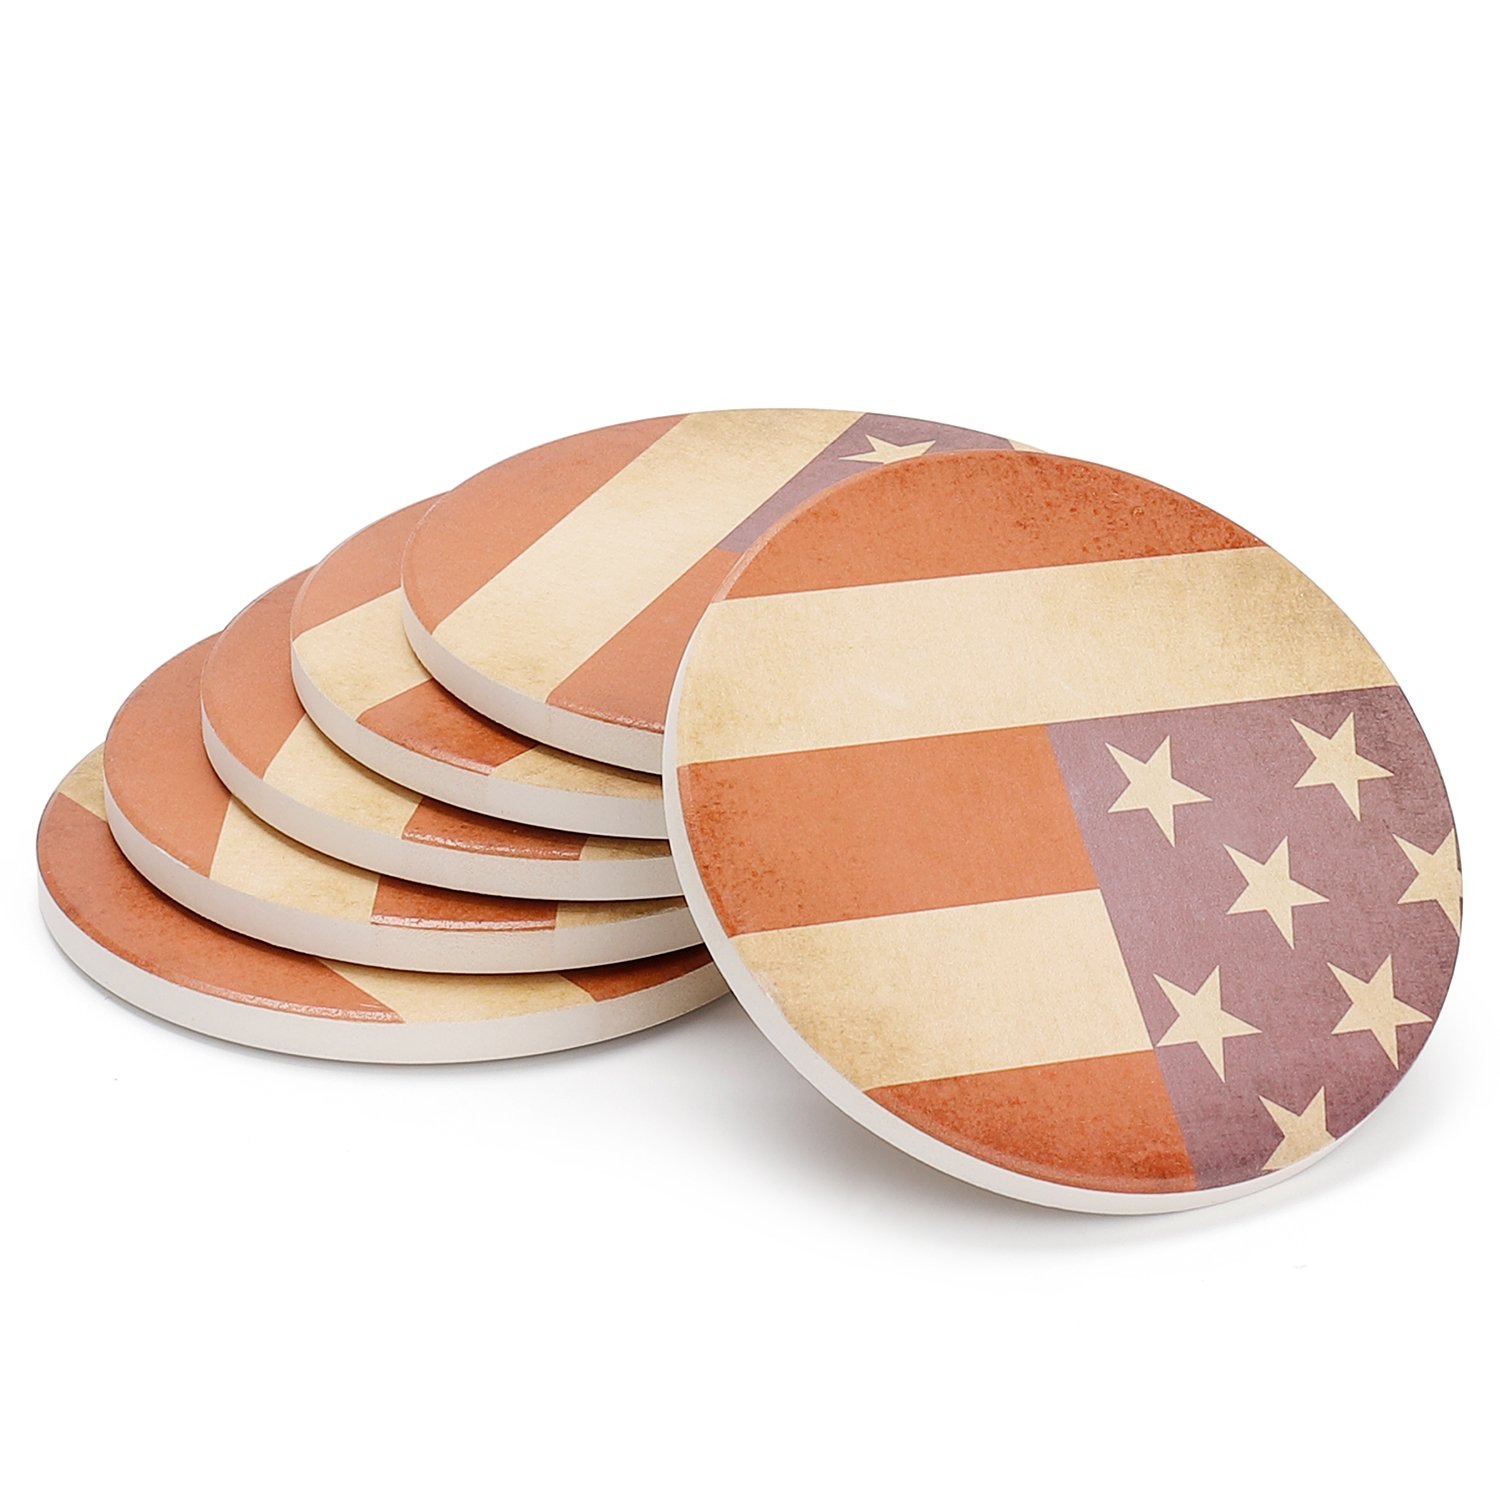 Teocera Drink Coasters - Absorbent Coaster Set with Cork Base Keep Drinks Spill Off Table, Natural Ceramic Coasters for Drinks, American Flag Style for 4th of July Decorations …